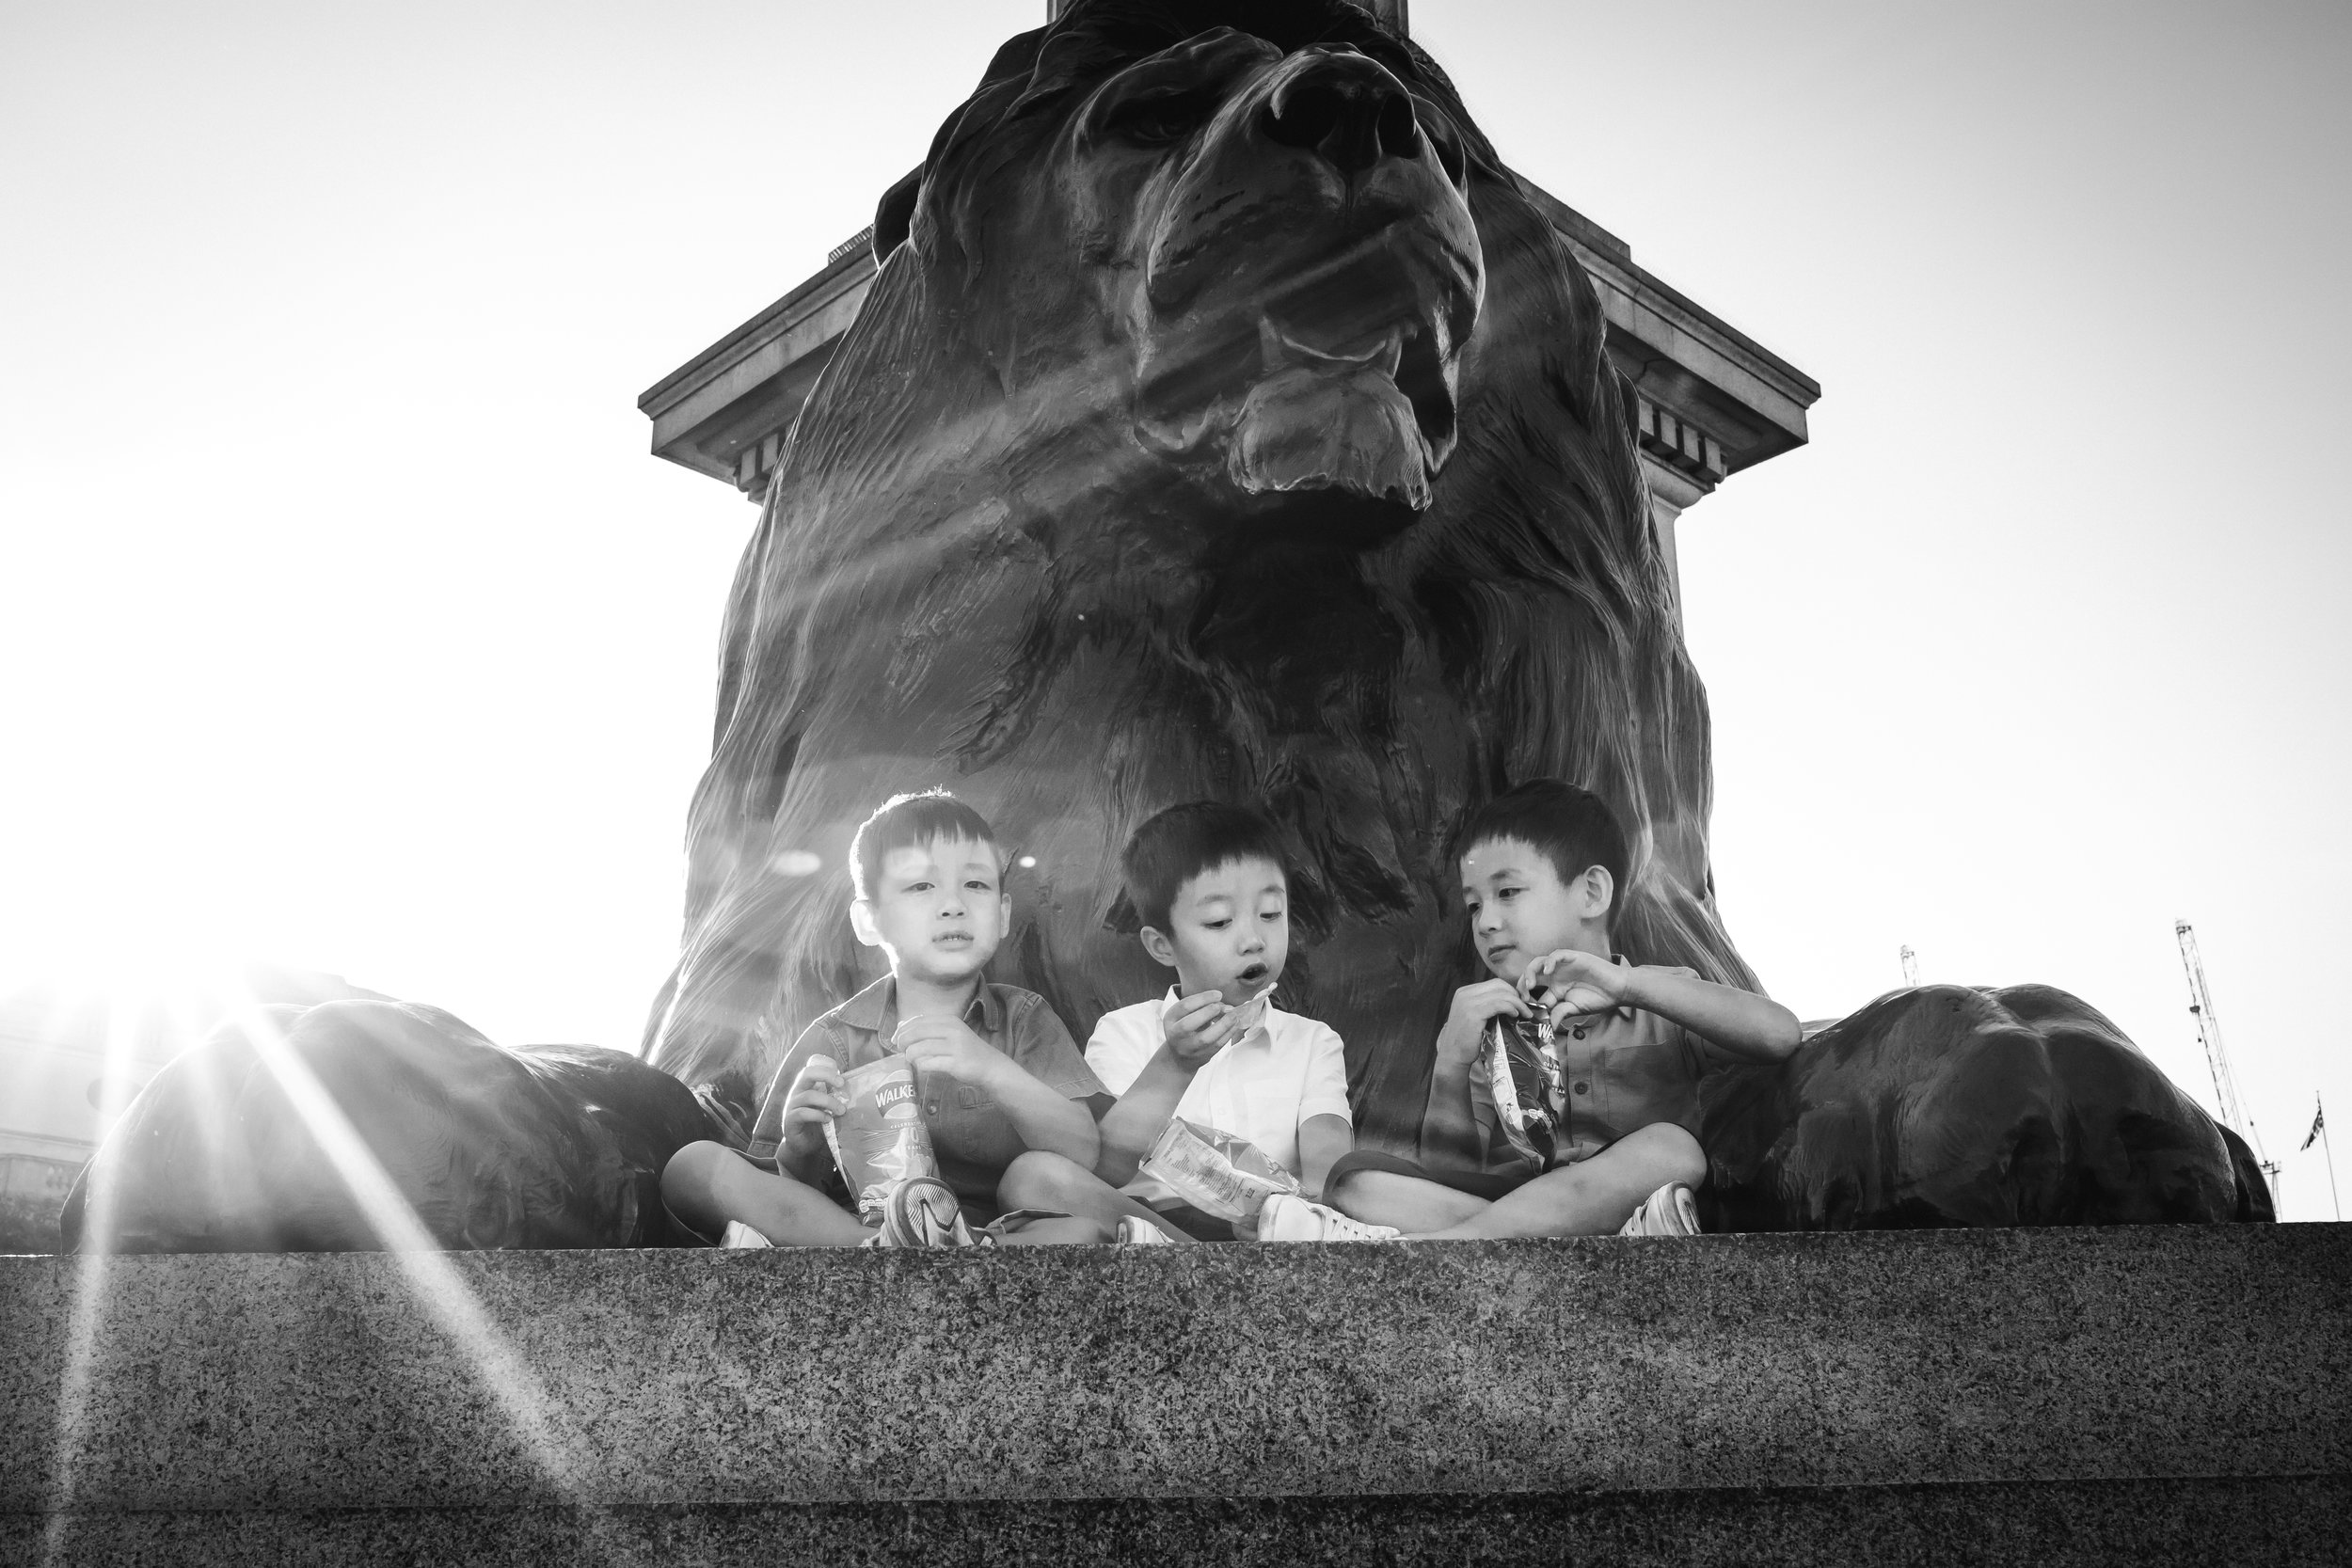 Snack time in Trafalgar Square - London Family Photography